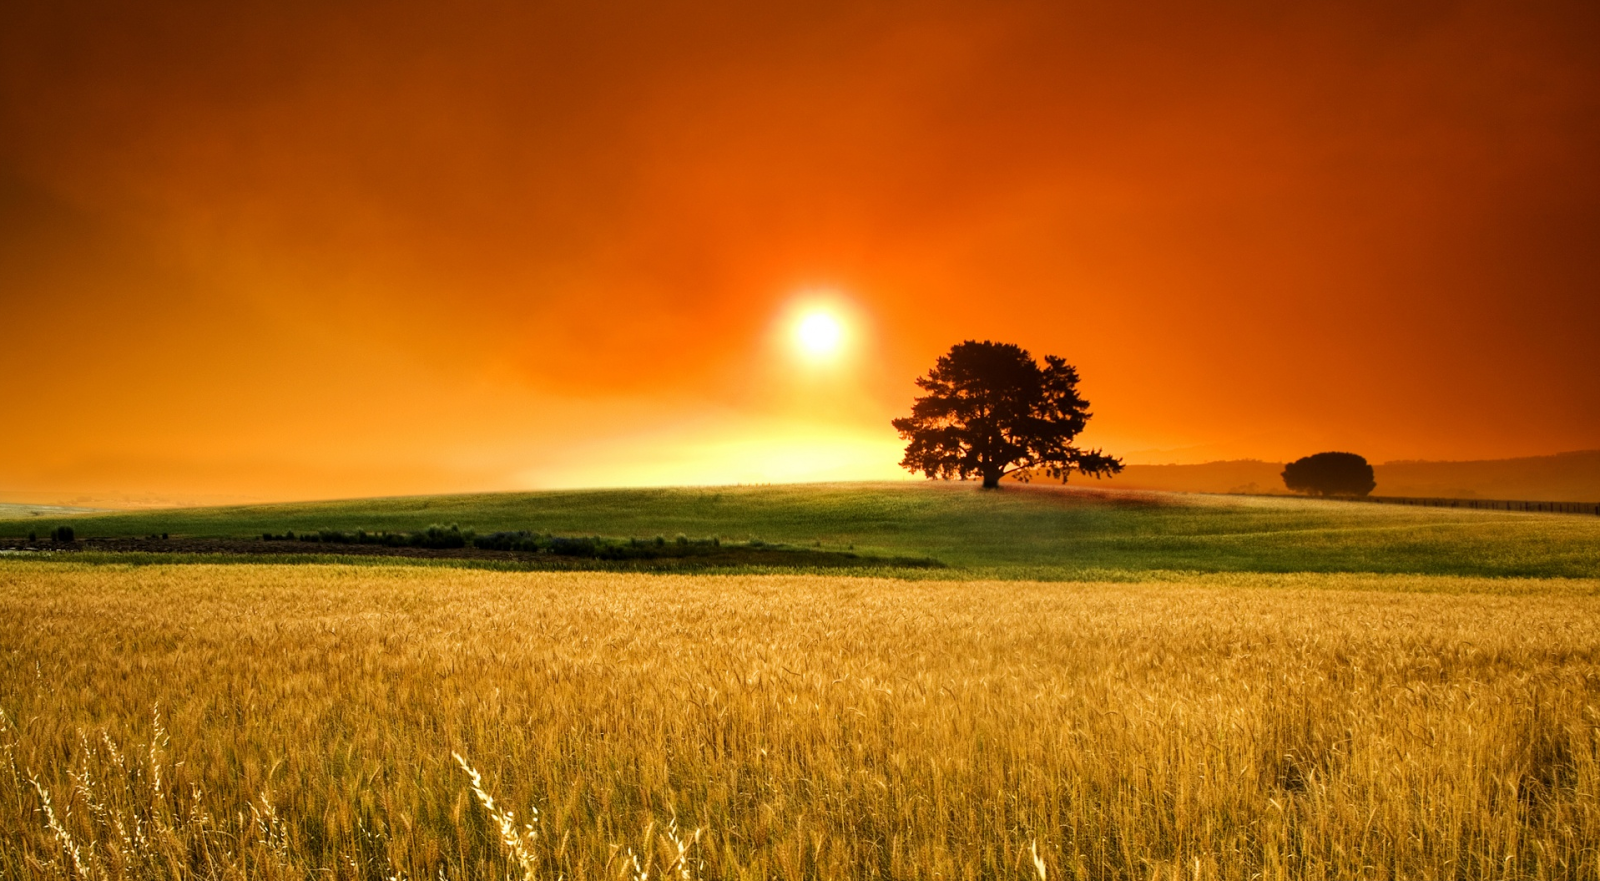 hd summer sunset desktop wallpaper hd summer sunset desktop wallpaper 1600x881